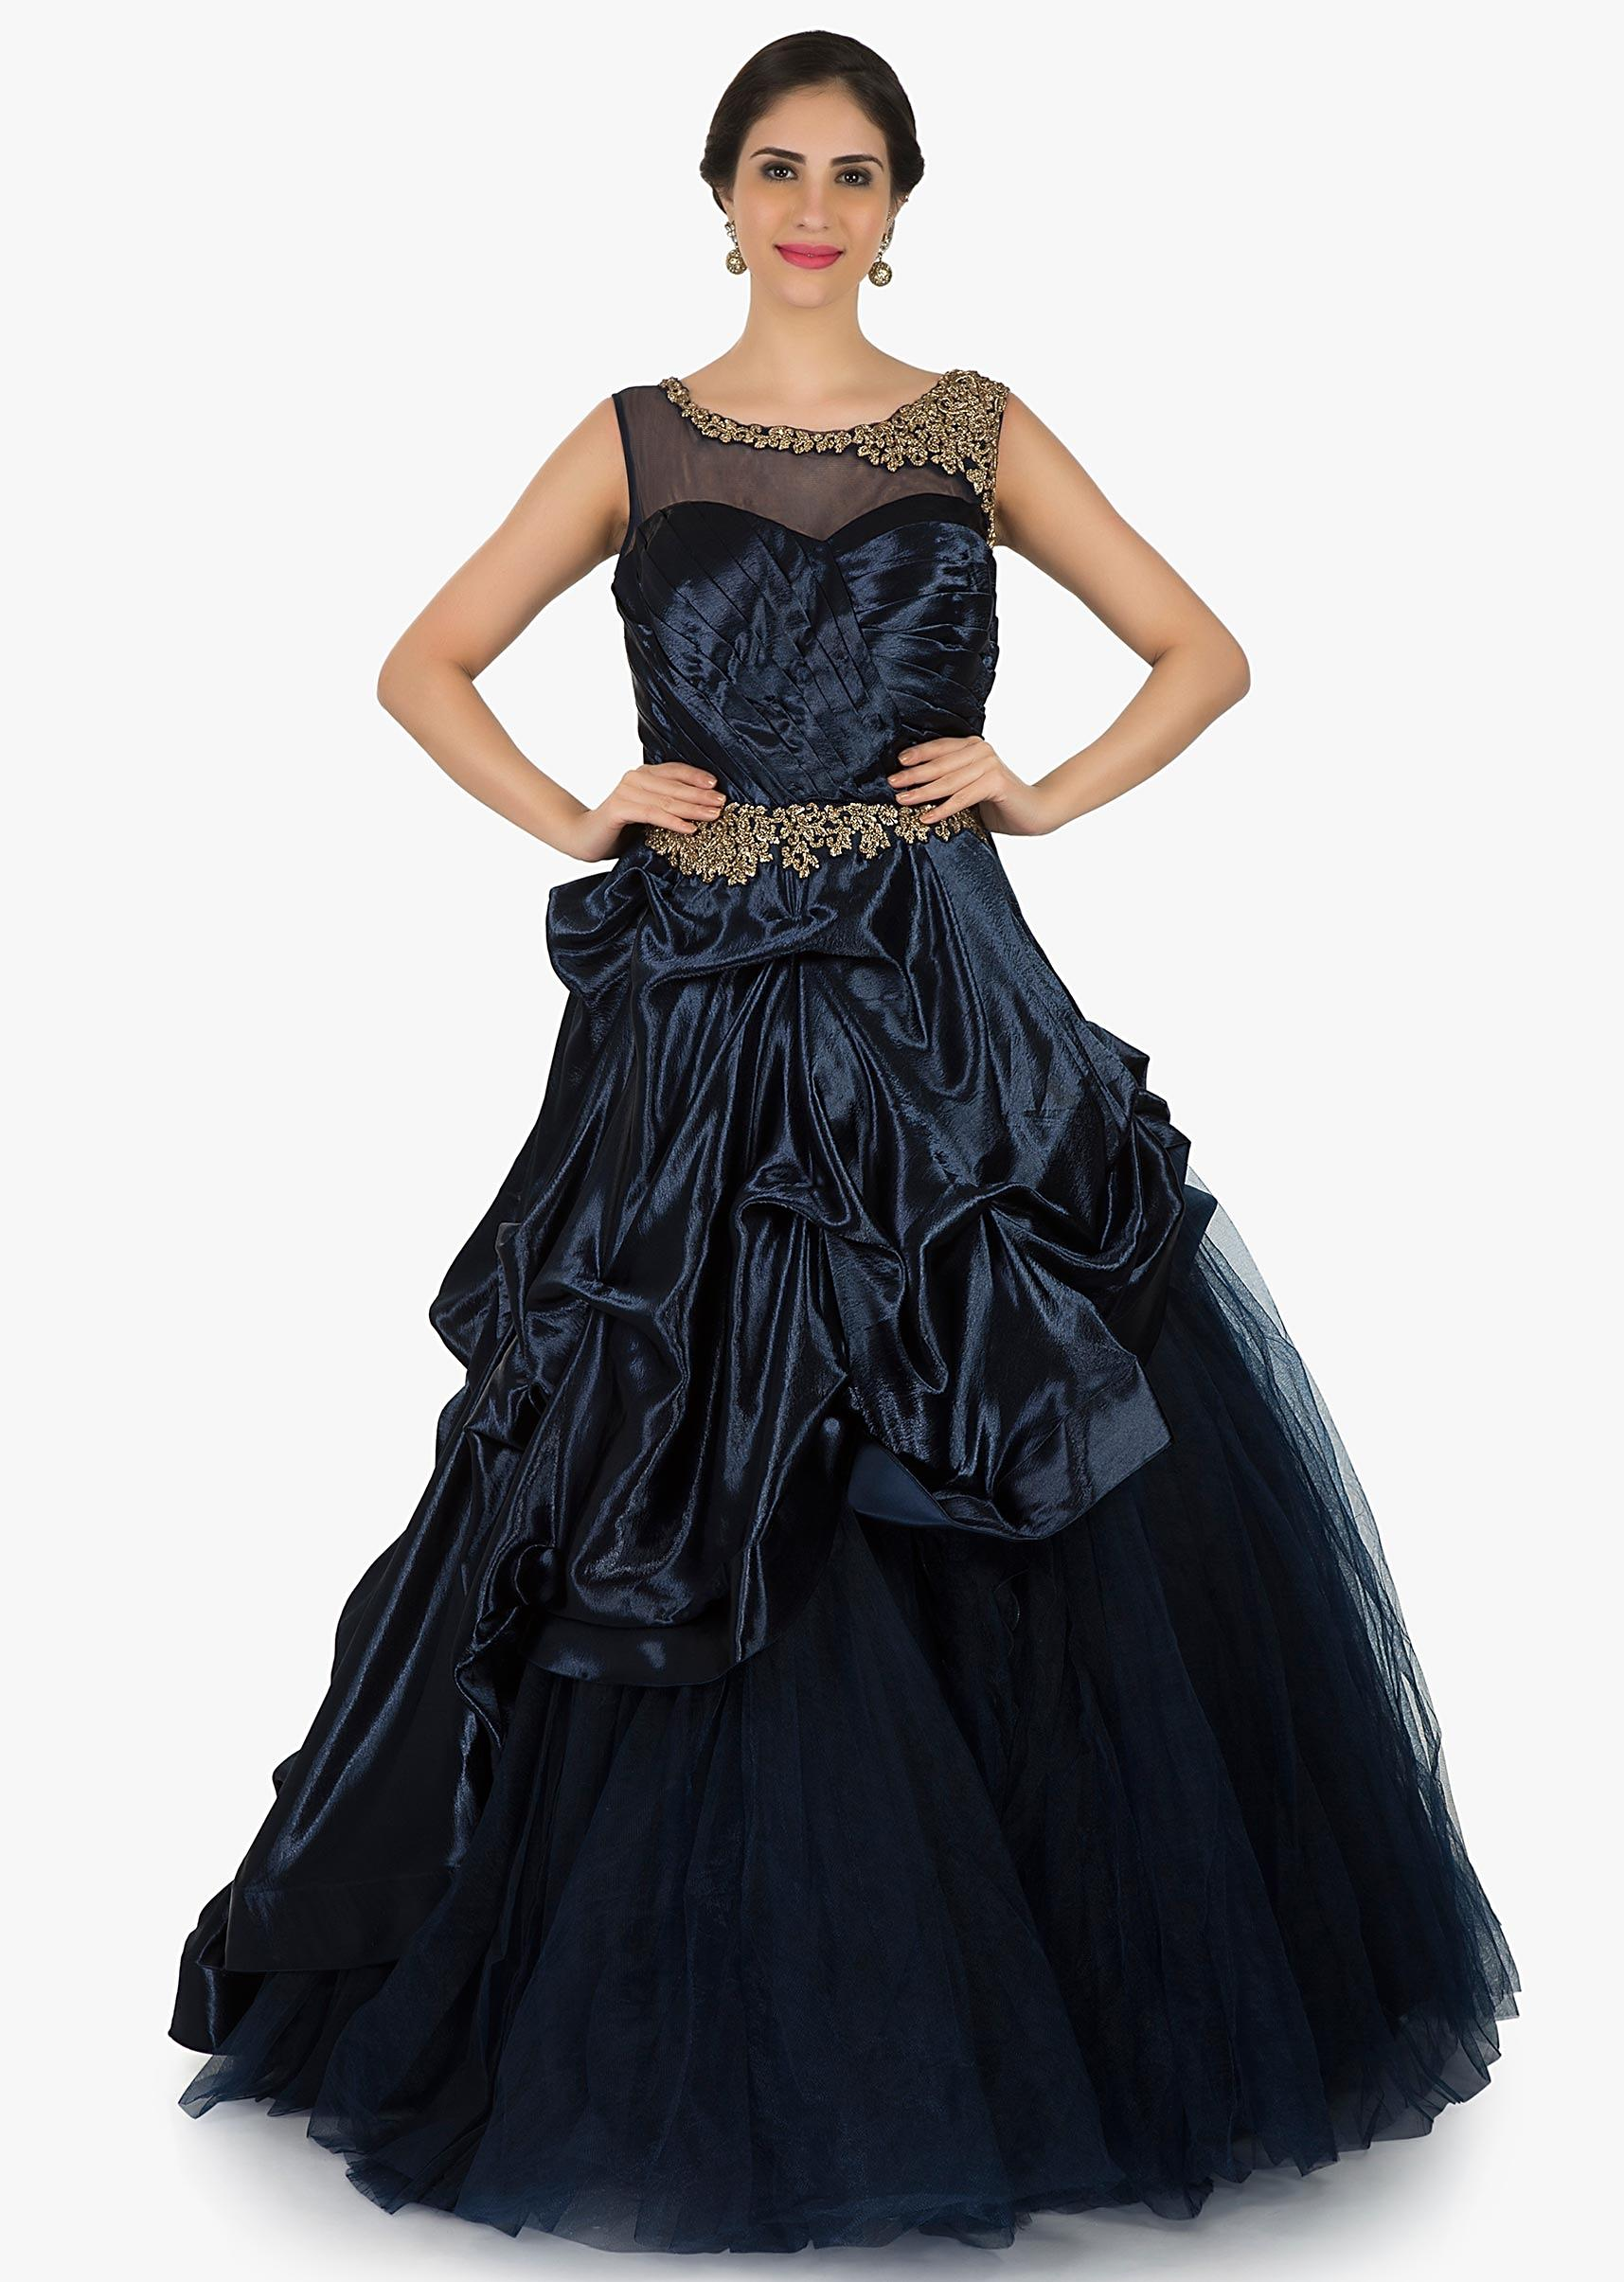 Navy Blue Gown In Net Amazingly Crafted Using The Zardosi Embroidery